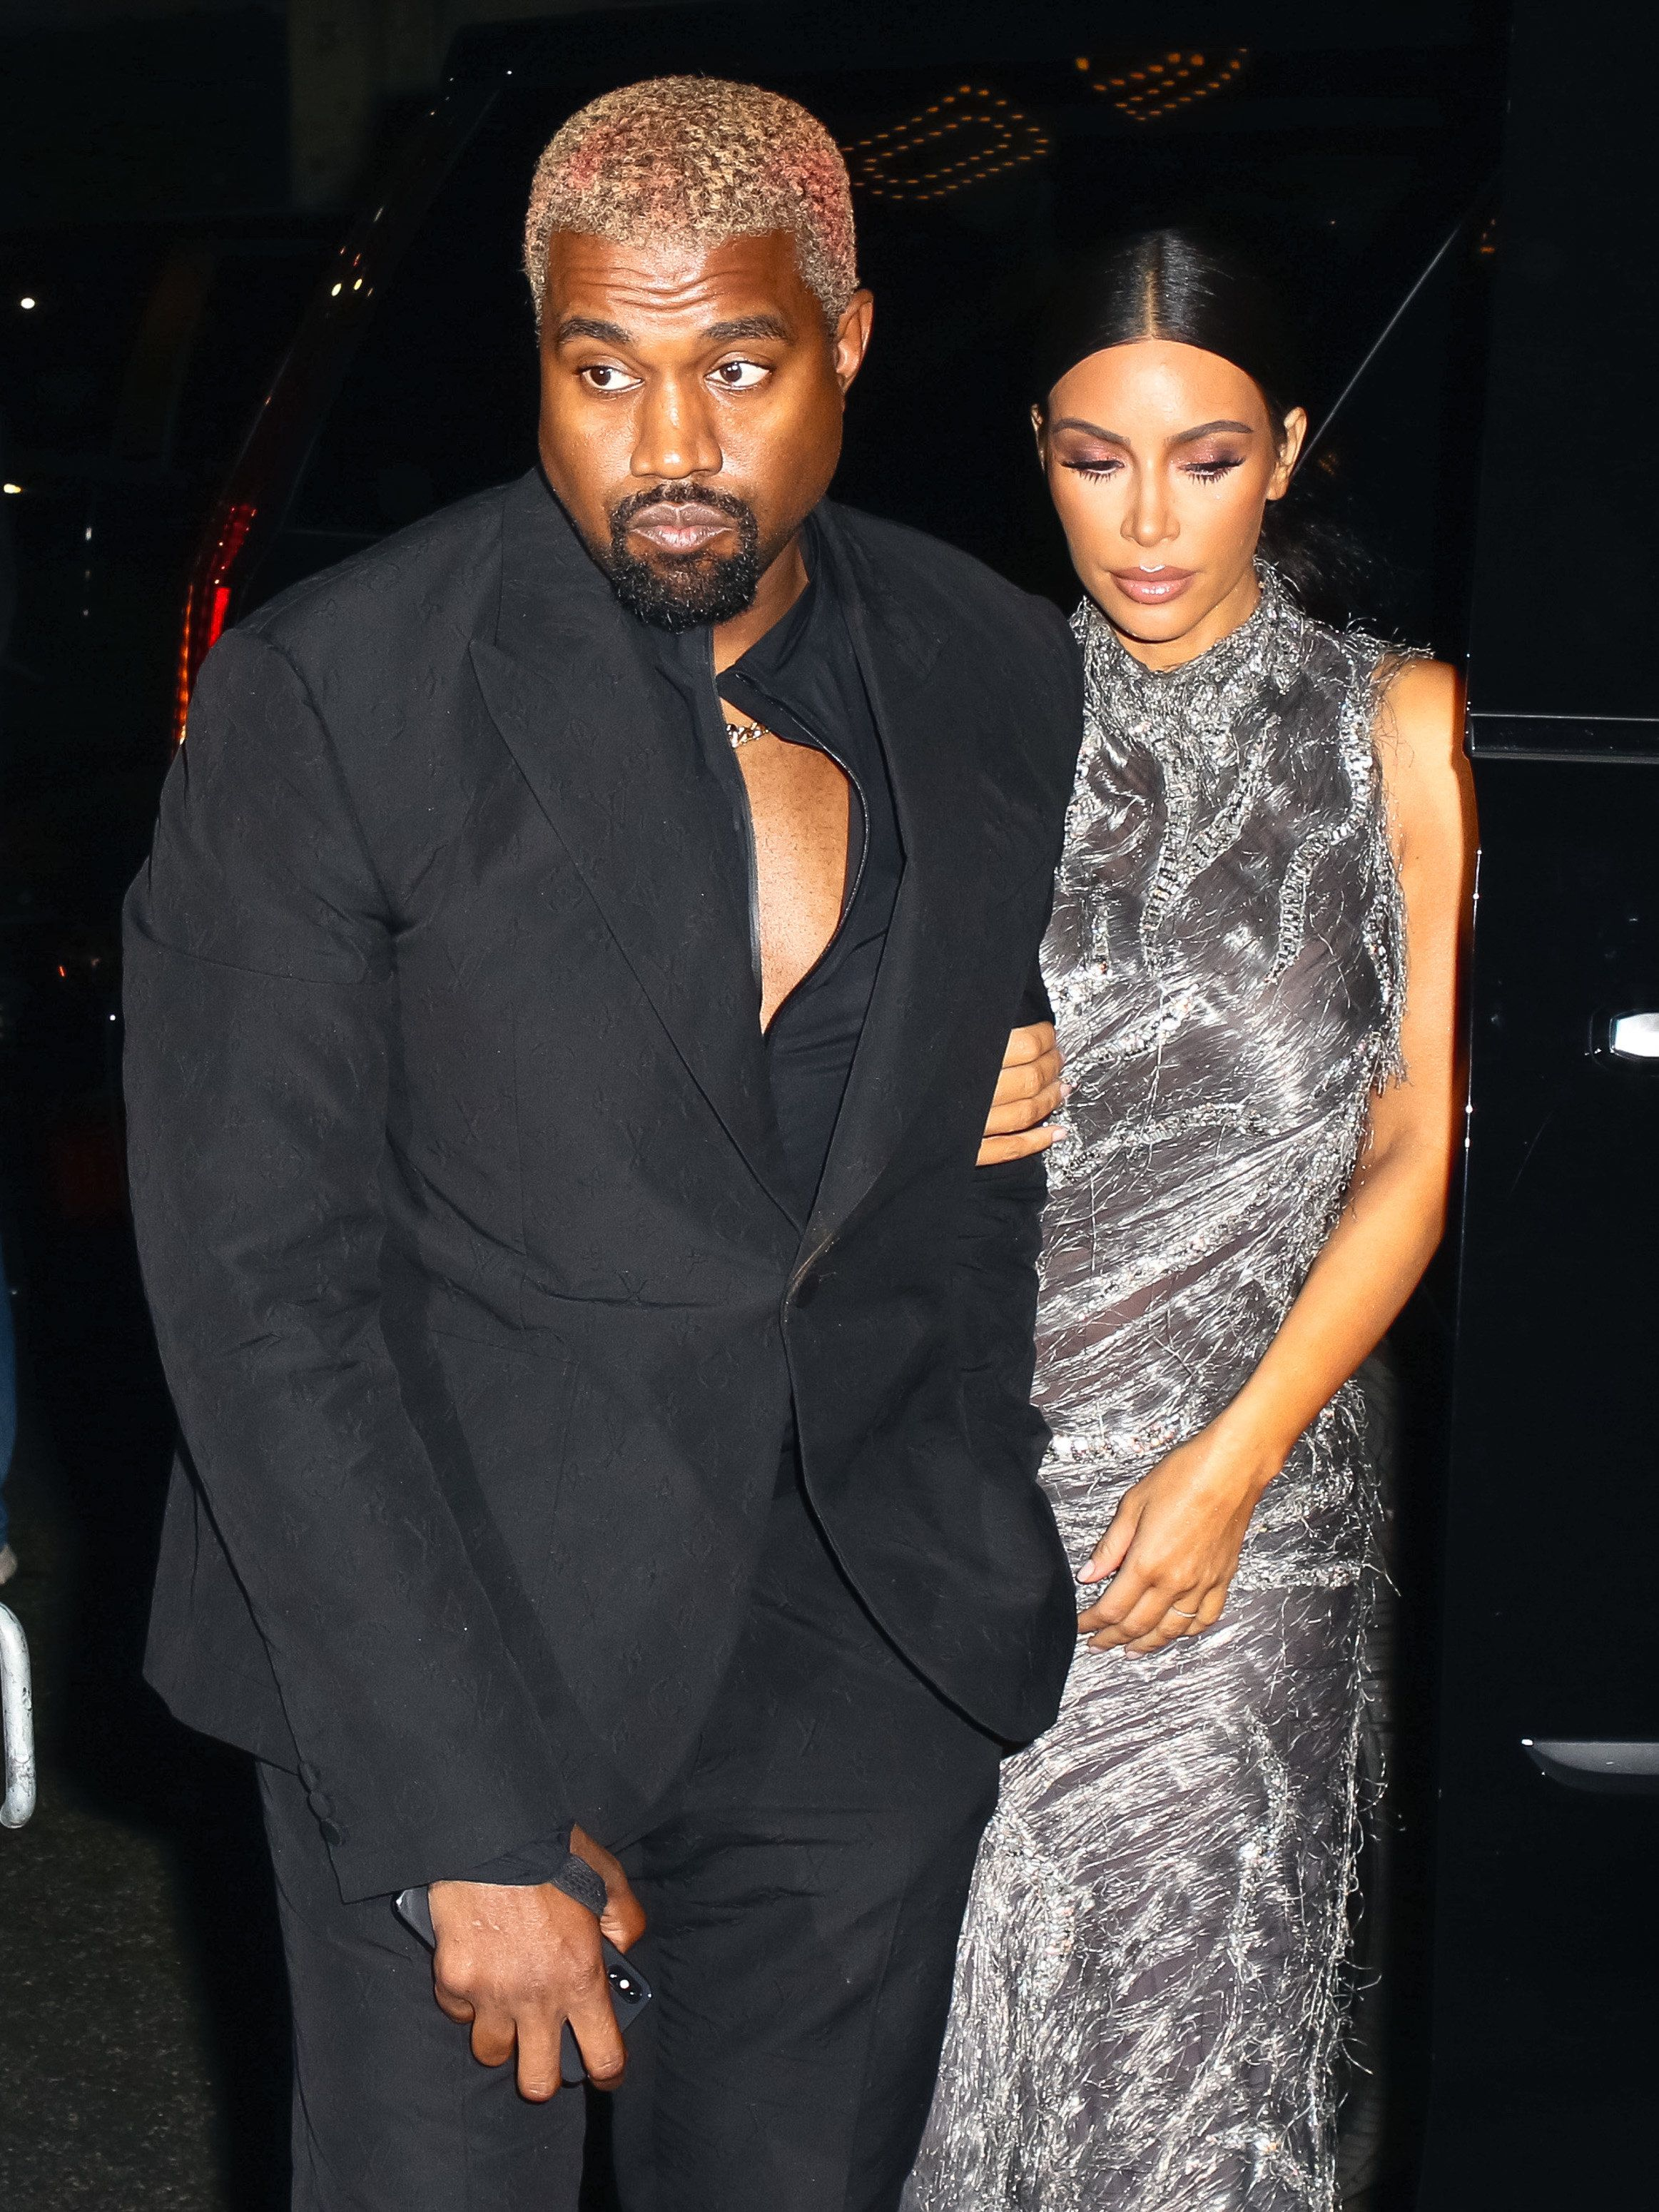 Kanye West And Kim Kardashian Reportedly Having A Baby